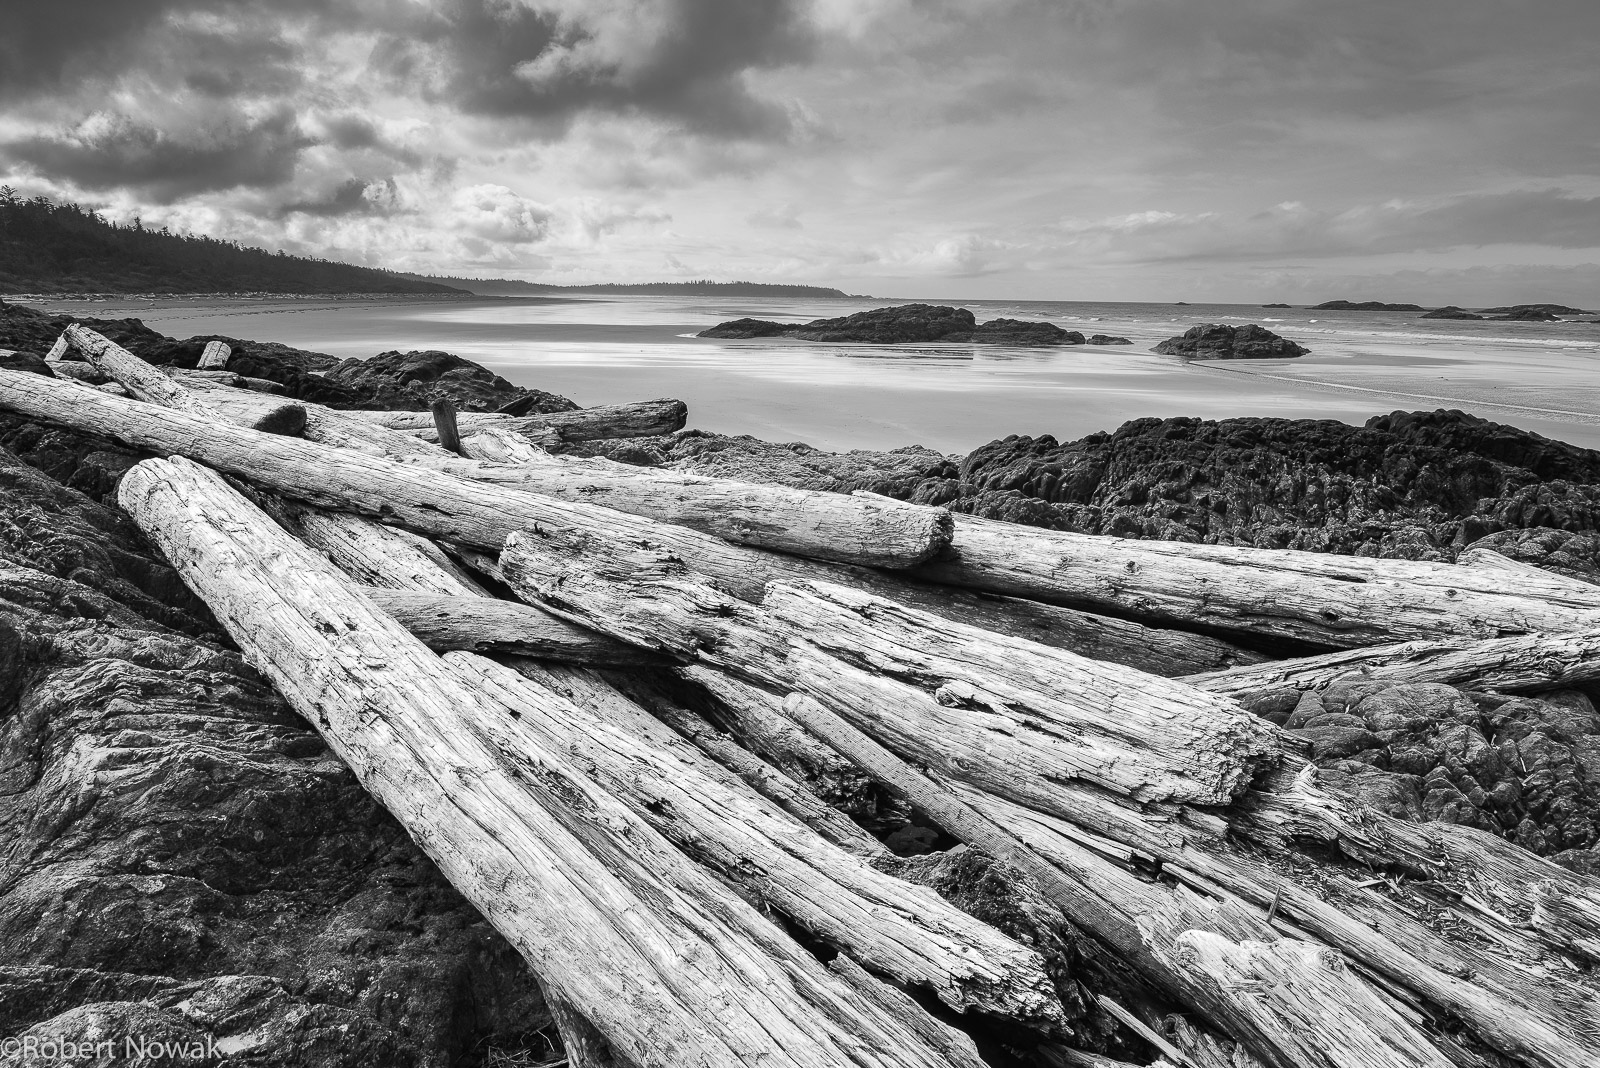 washed, ashore, pacific rim national park, British Columbia, Canada, Long Beach, photo